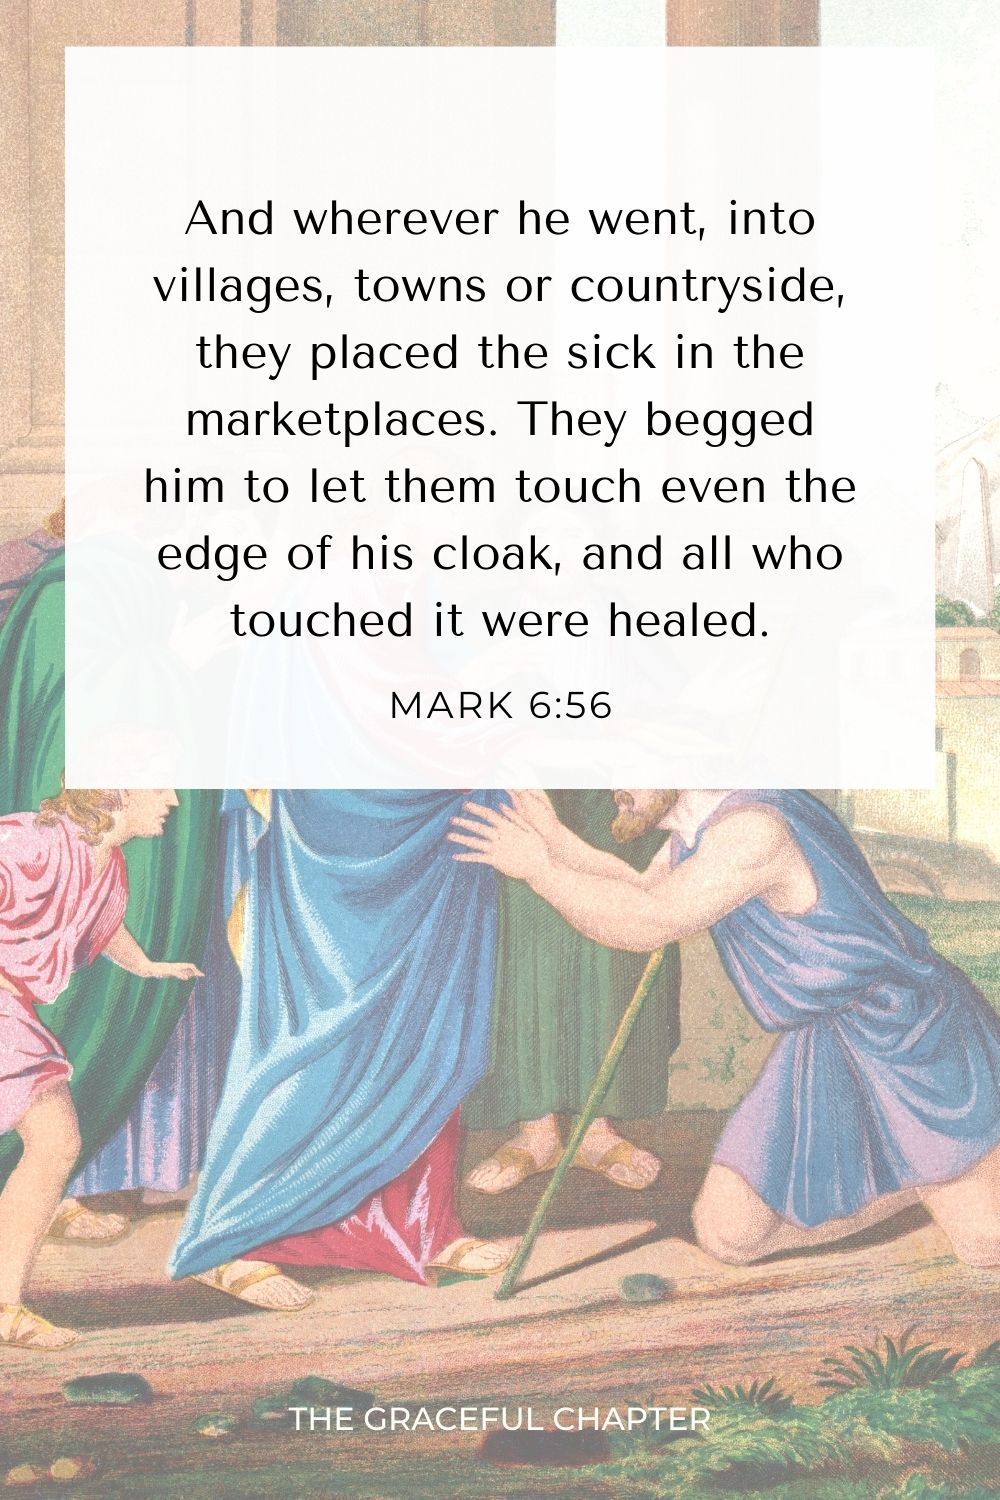 And wherever he went, into villages, towns or countryside, they placed the sick in the marketplaces. They begged him to let them touch even the edge of his cloak, and all who touched it were healed. Mark 6:56